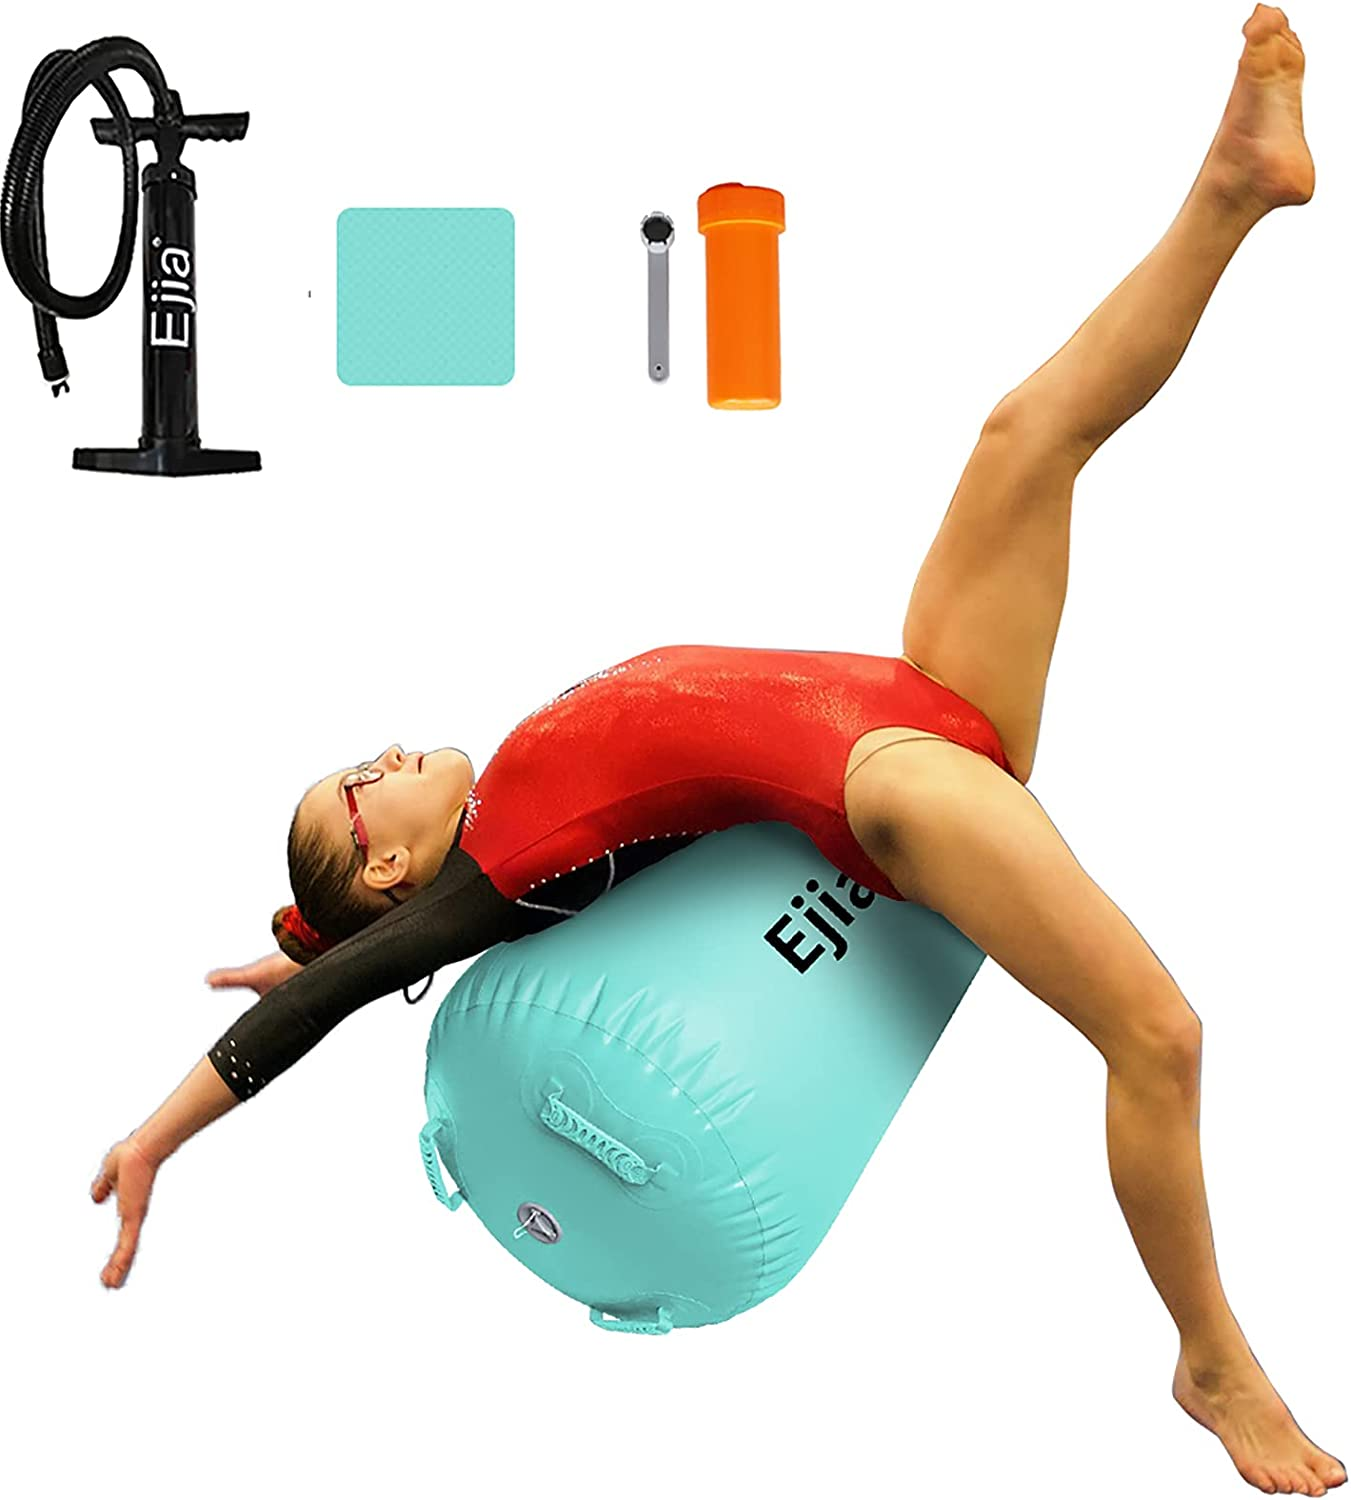 EJIA Air Roller Back Handspring Max 83% OFF Trainer Aid famous Inflatable Gymnasti